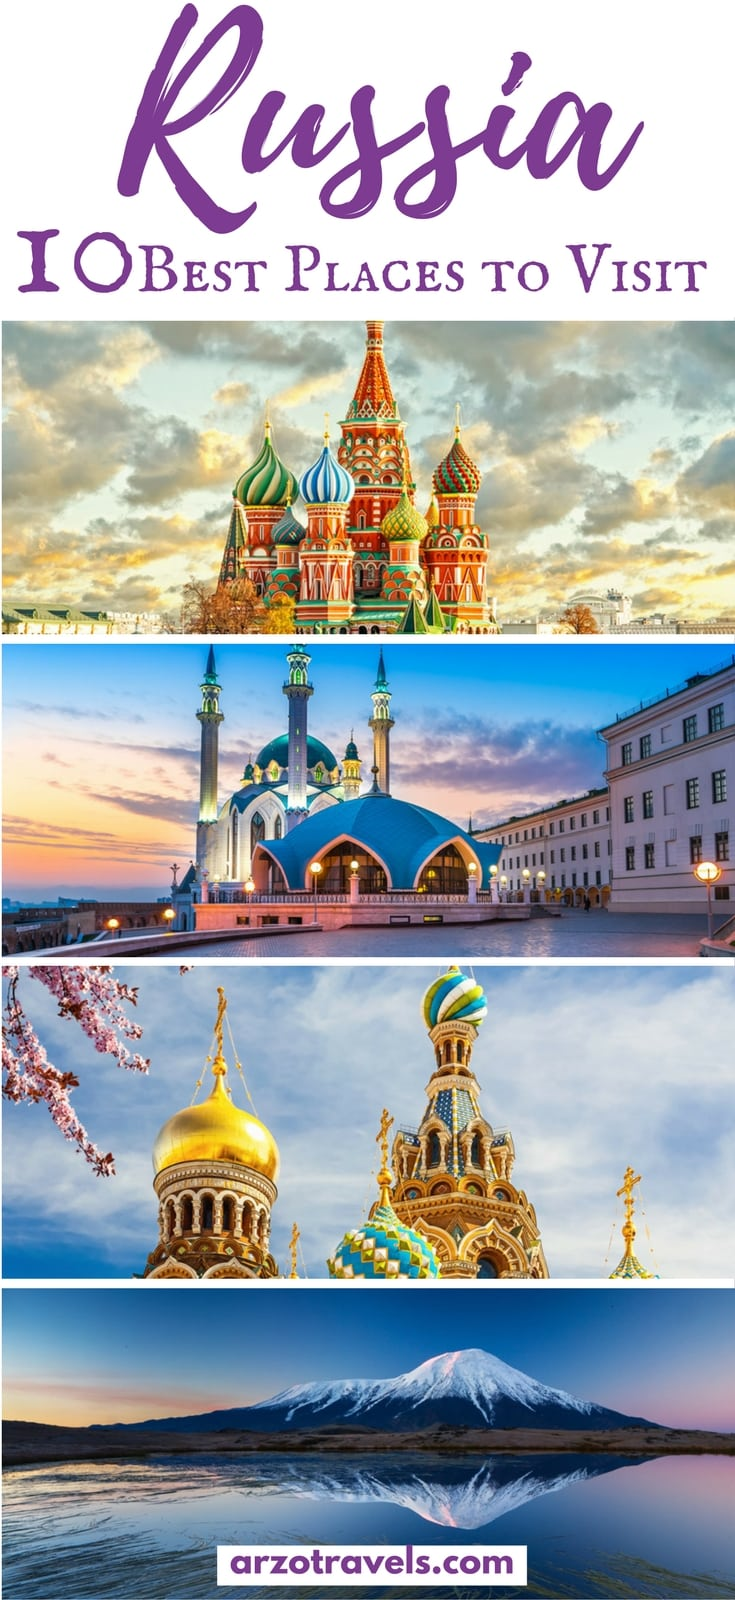 Best places to see and visit in Russia. Where to go in Russia.